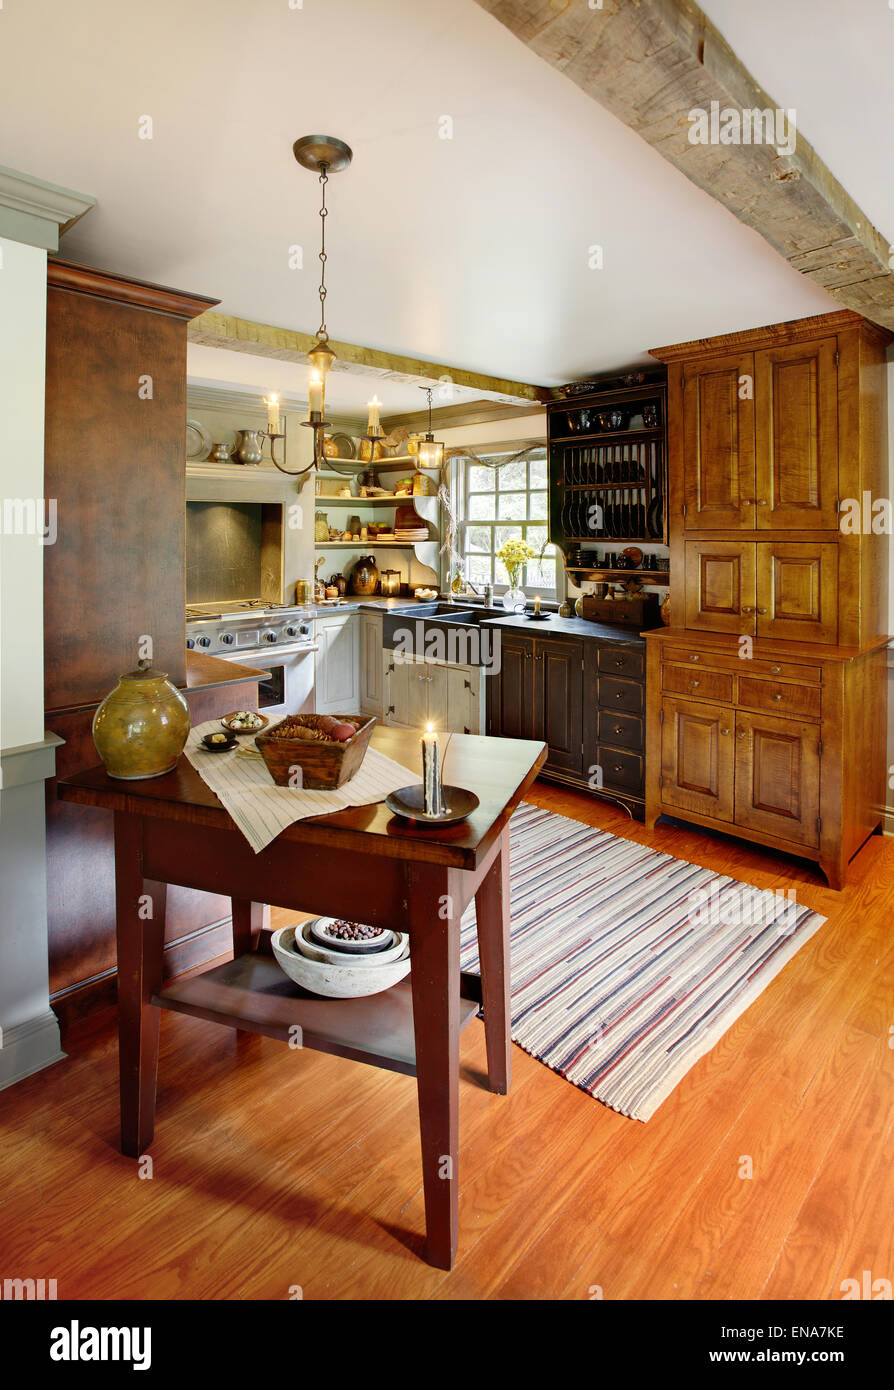 A modernized kitchen in a primitive colonial style reproduction home. - Stock Image